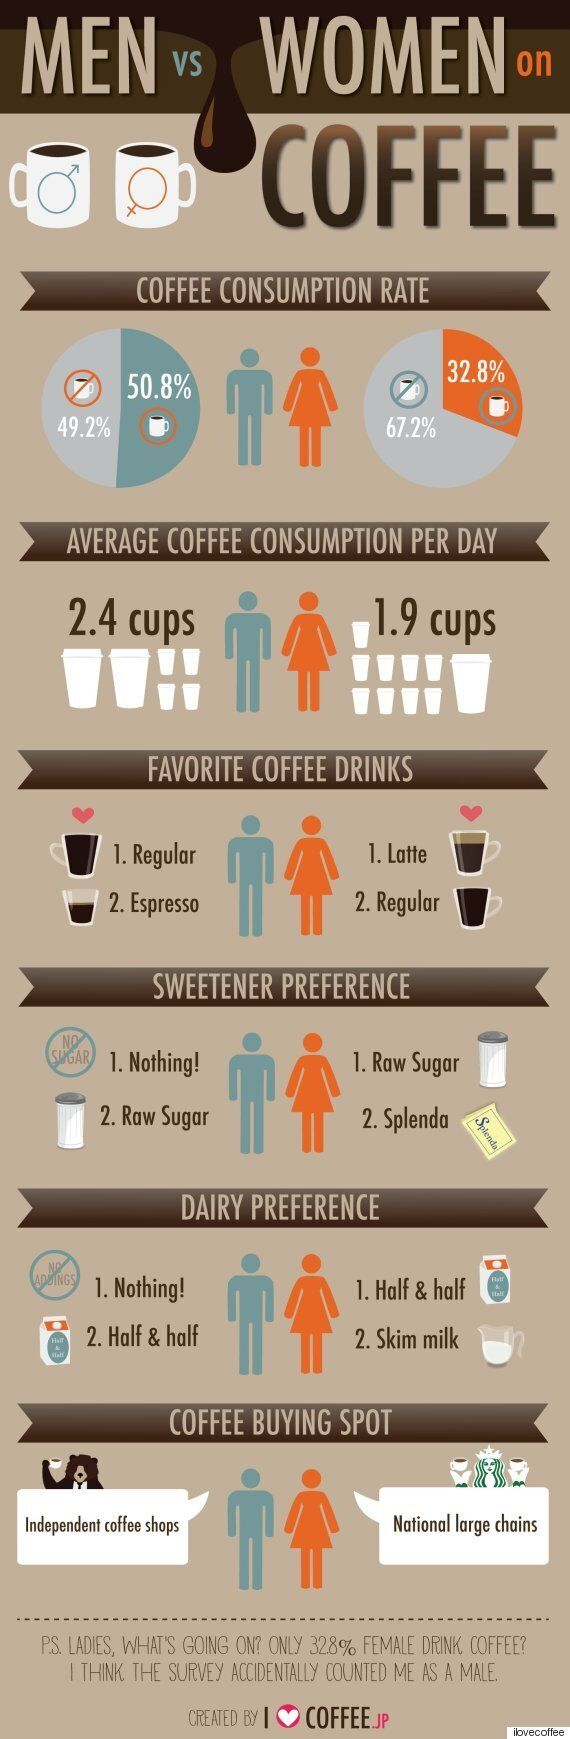 Coffee Consumption Differs Between Genders, According To This